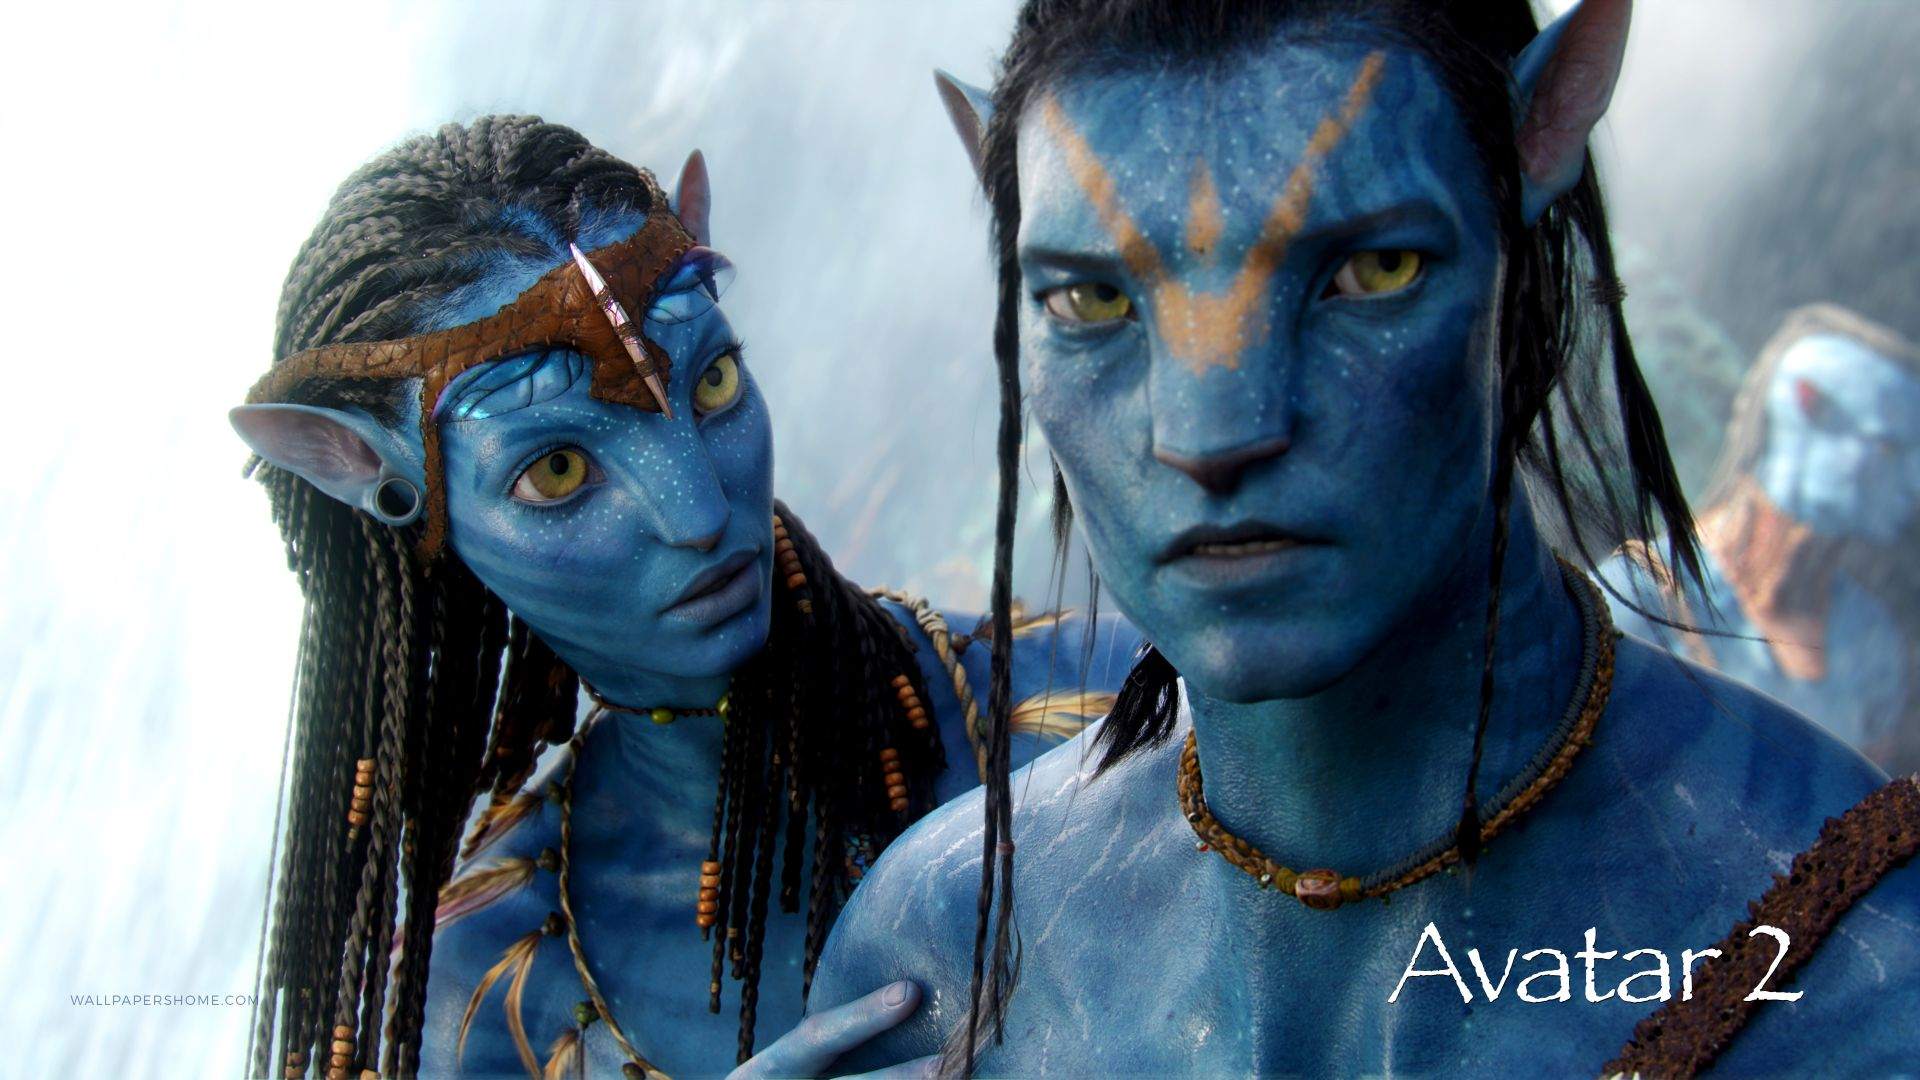 Аватар 2, Avatar 2, poster, 4k (horizontal)